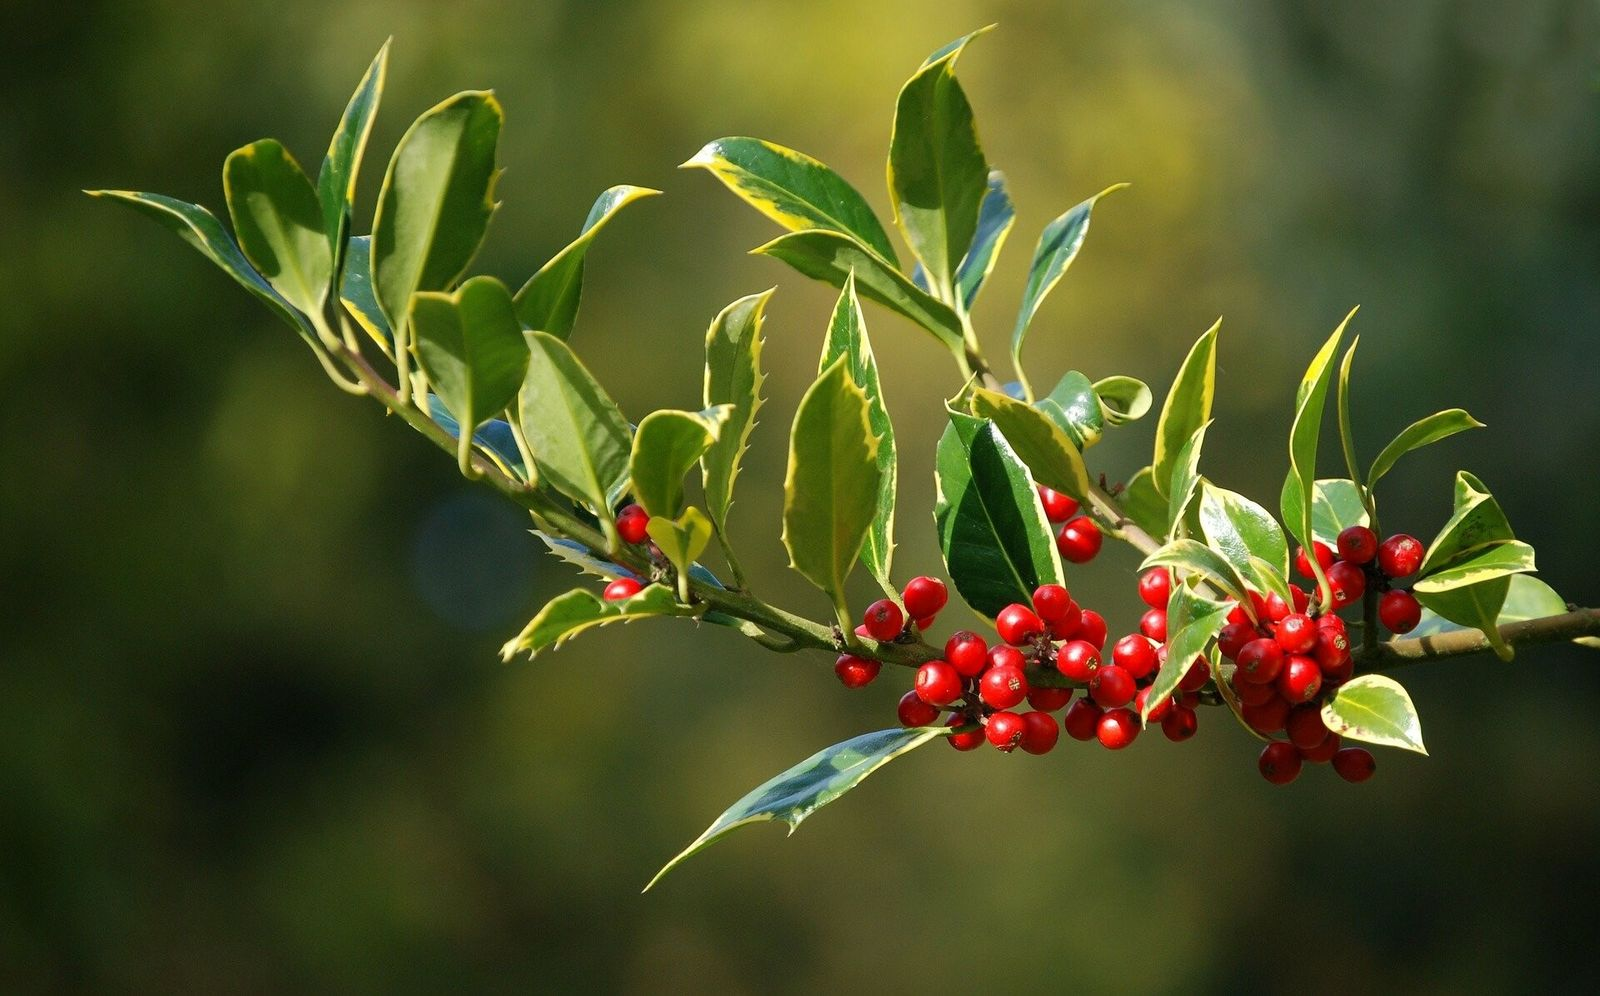 Holly has mixed resonance when it comes to the Christmas season – and for many represents ...